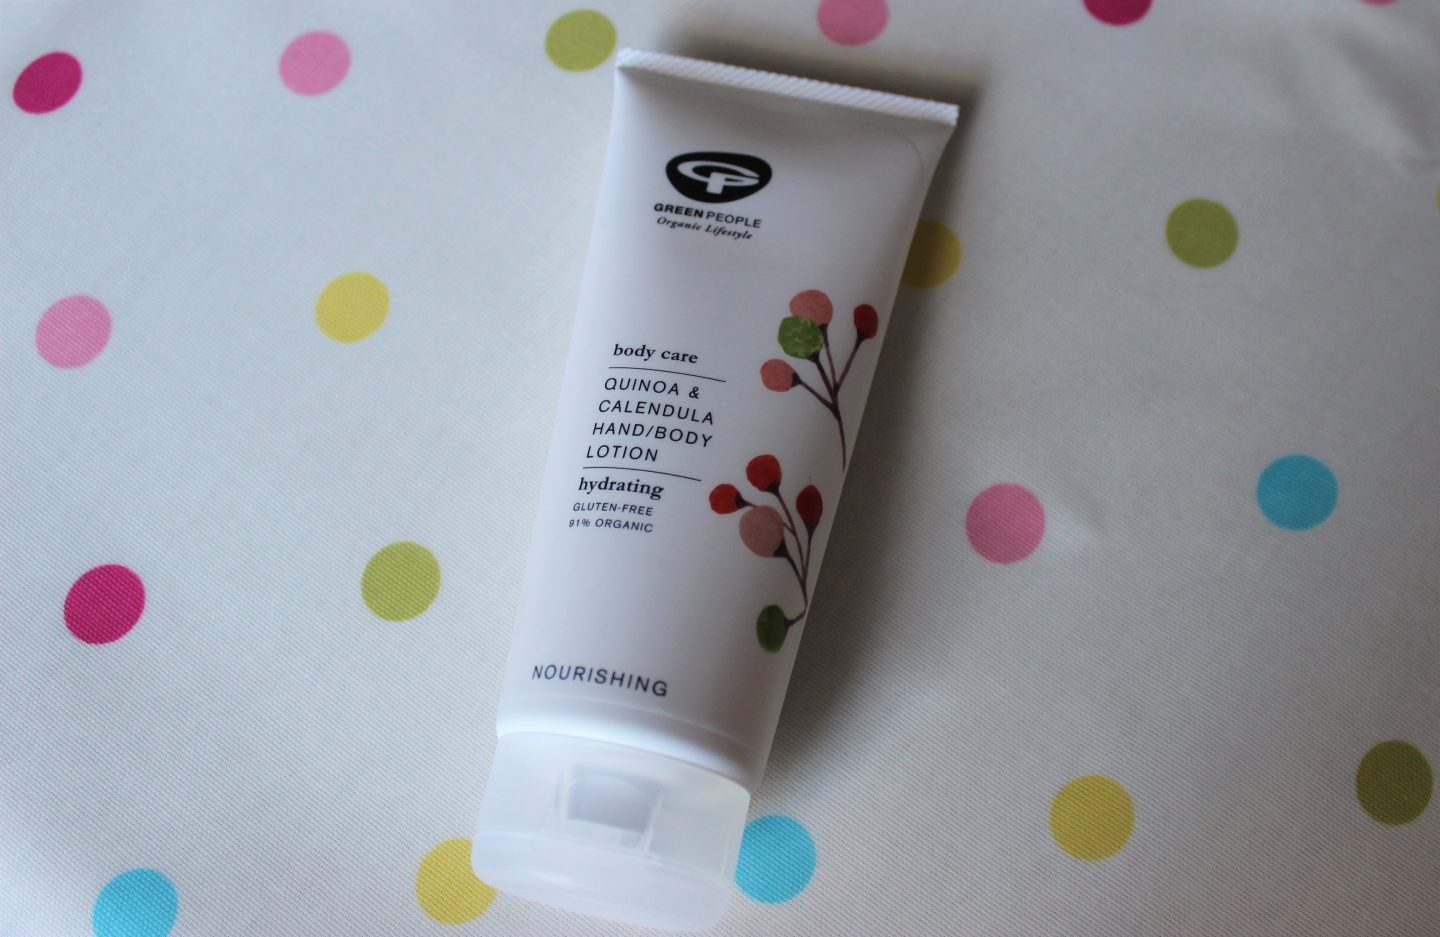 Green People Quinoa & Calendula Hand/Body Lotion | Review & Giveaway